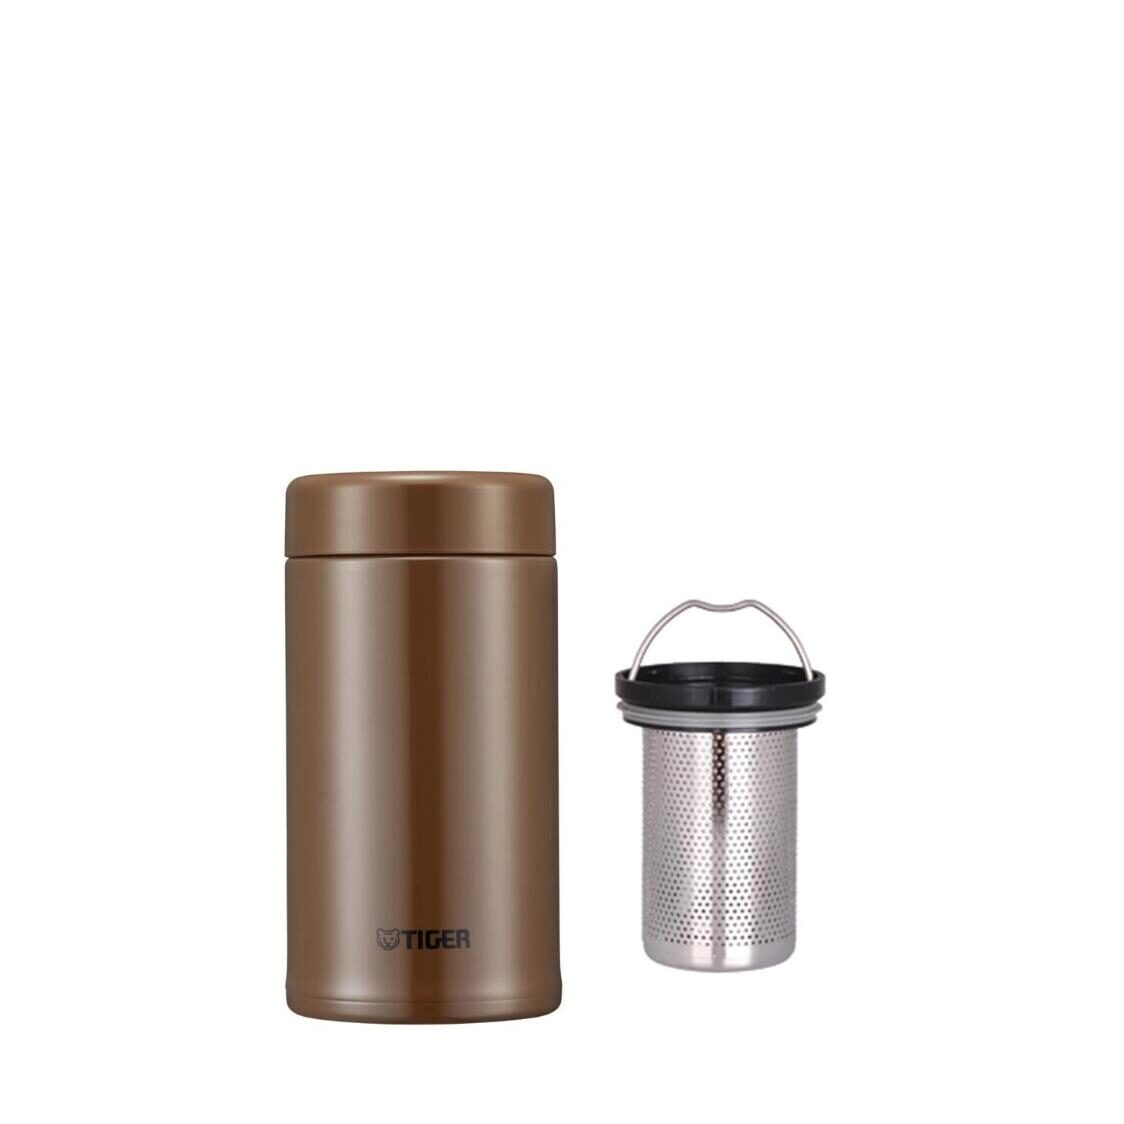 Tiger 360ml Stainless Steel Mug with Tea Strainer - Brown MCA-T360 TI